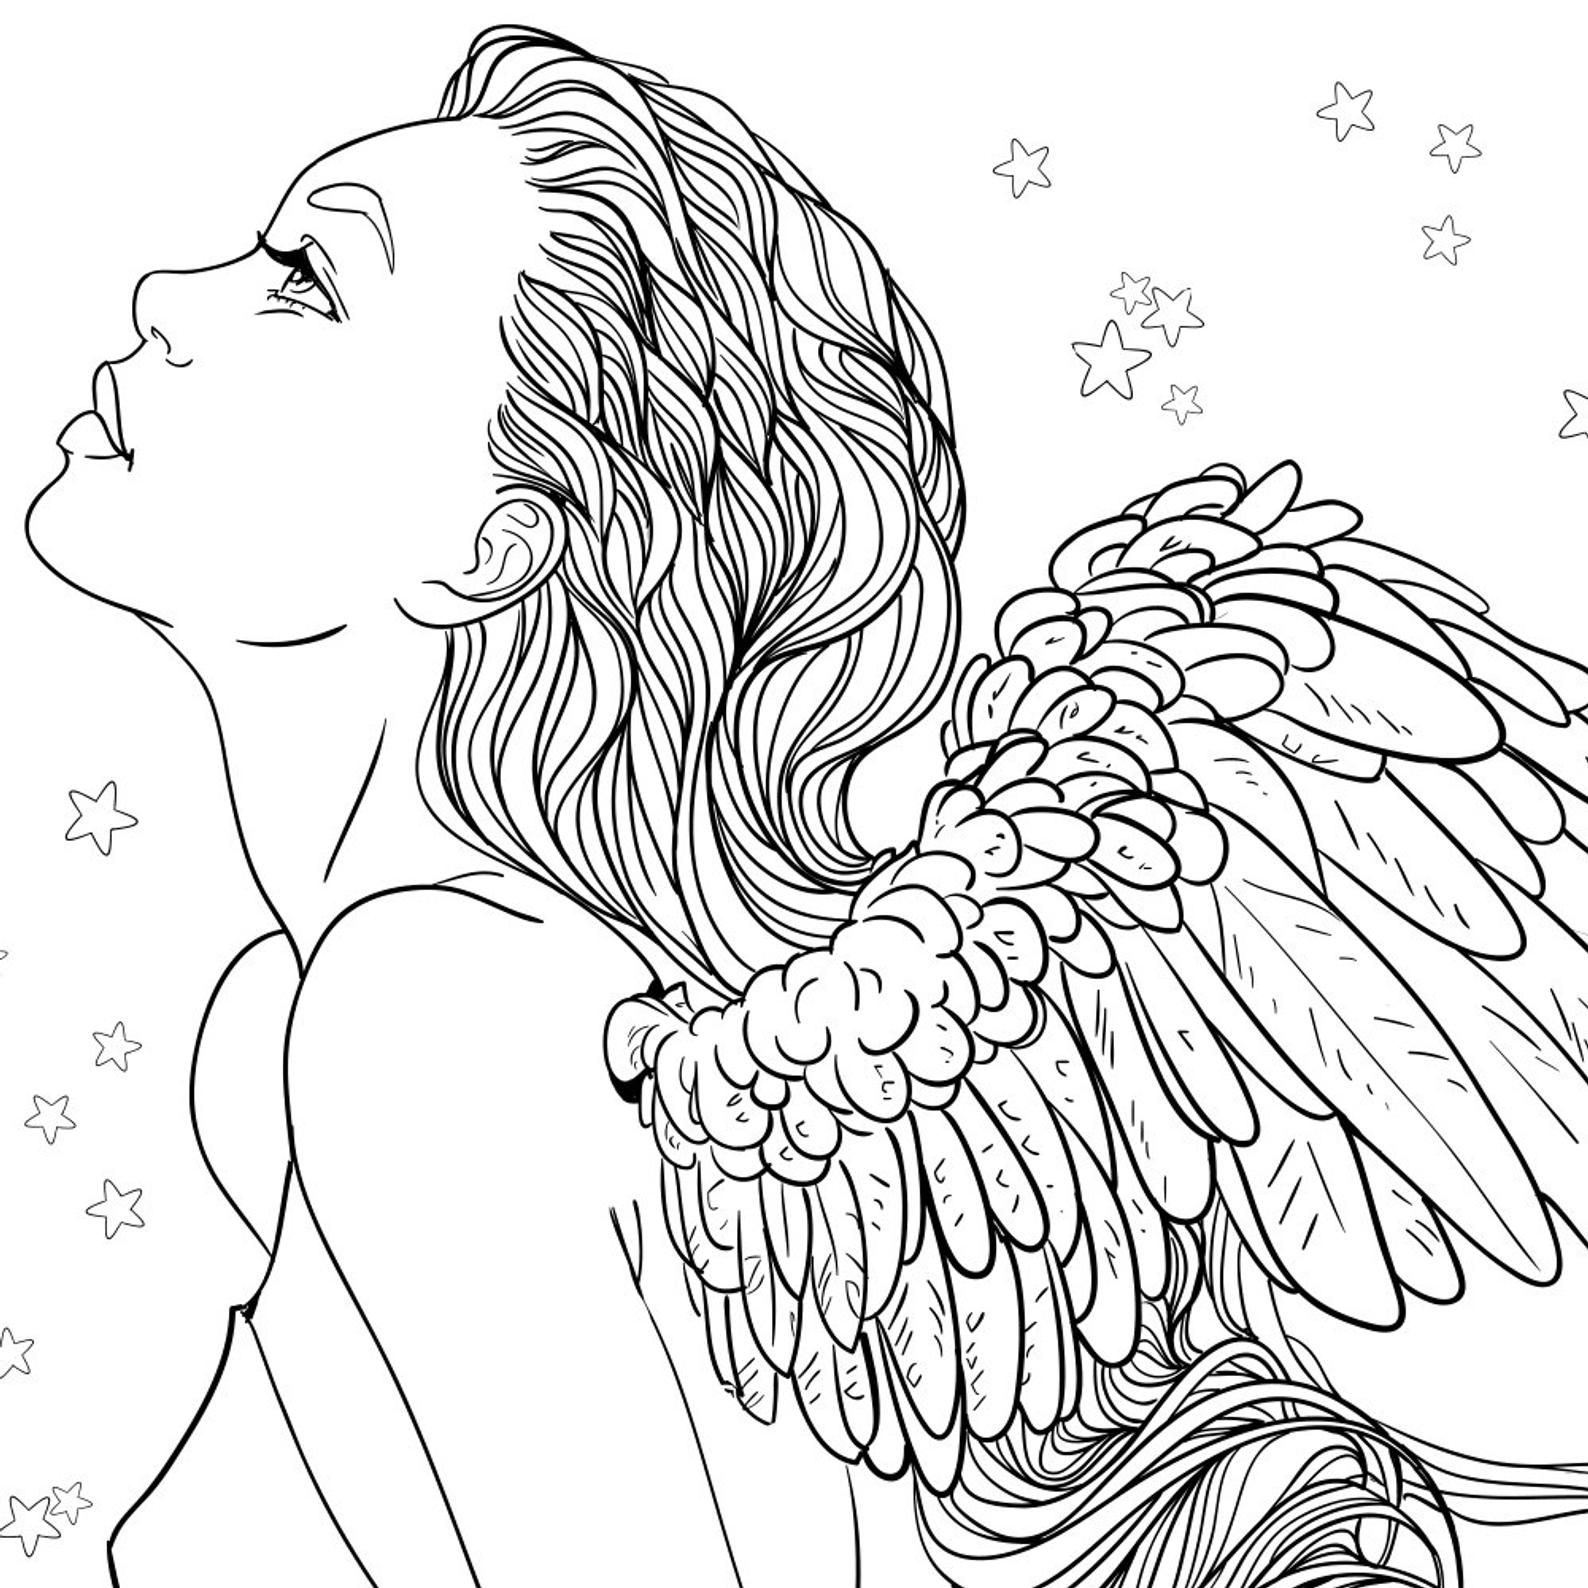 angel coloring pages for adults angel coloring pages tag 26 splendi angel coloring pages pages for adults angel coloring